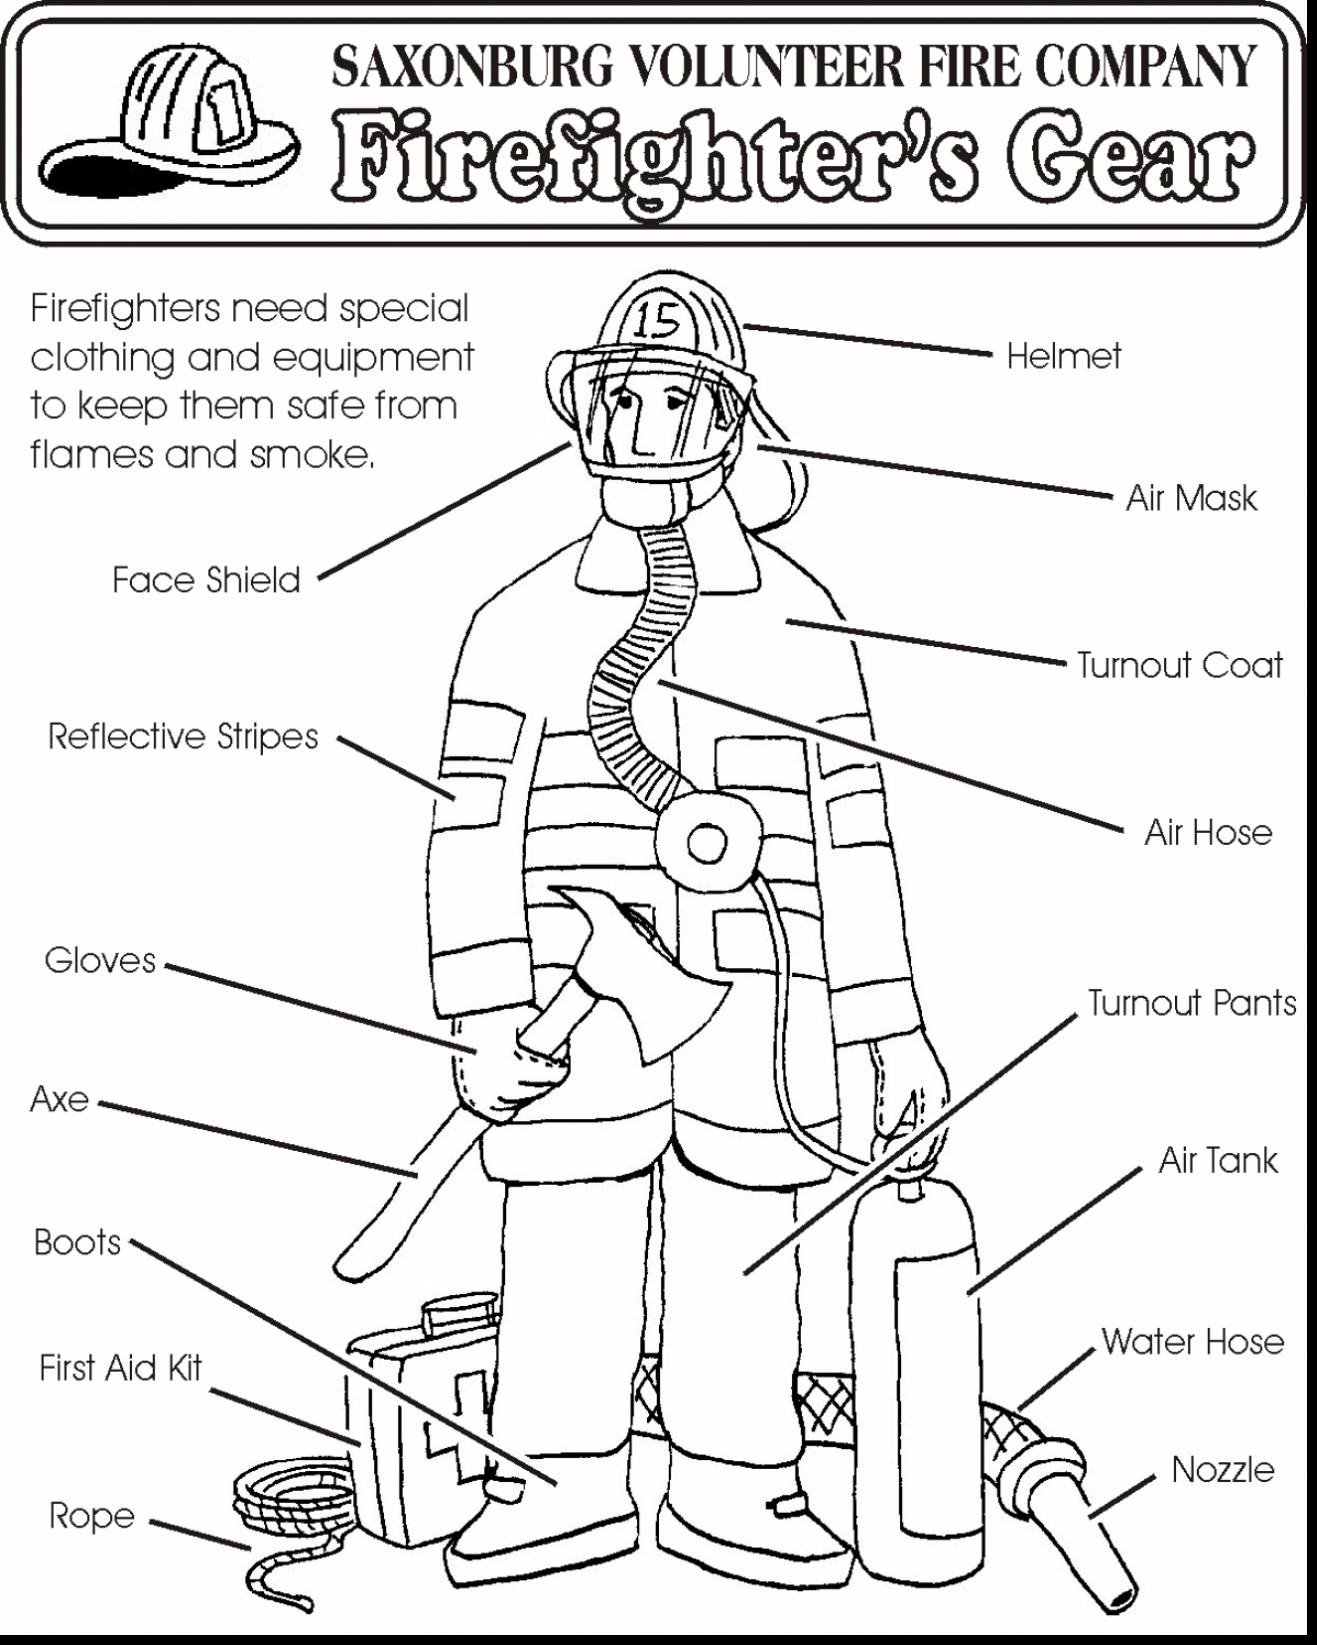 Free Printable Fire Safety Worksheets Fire Safety Coloring at Getdrawings Free Munity Helper